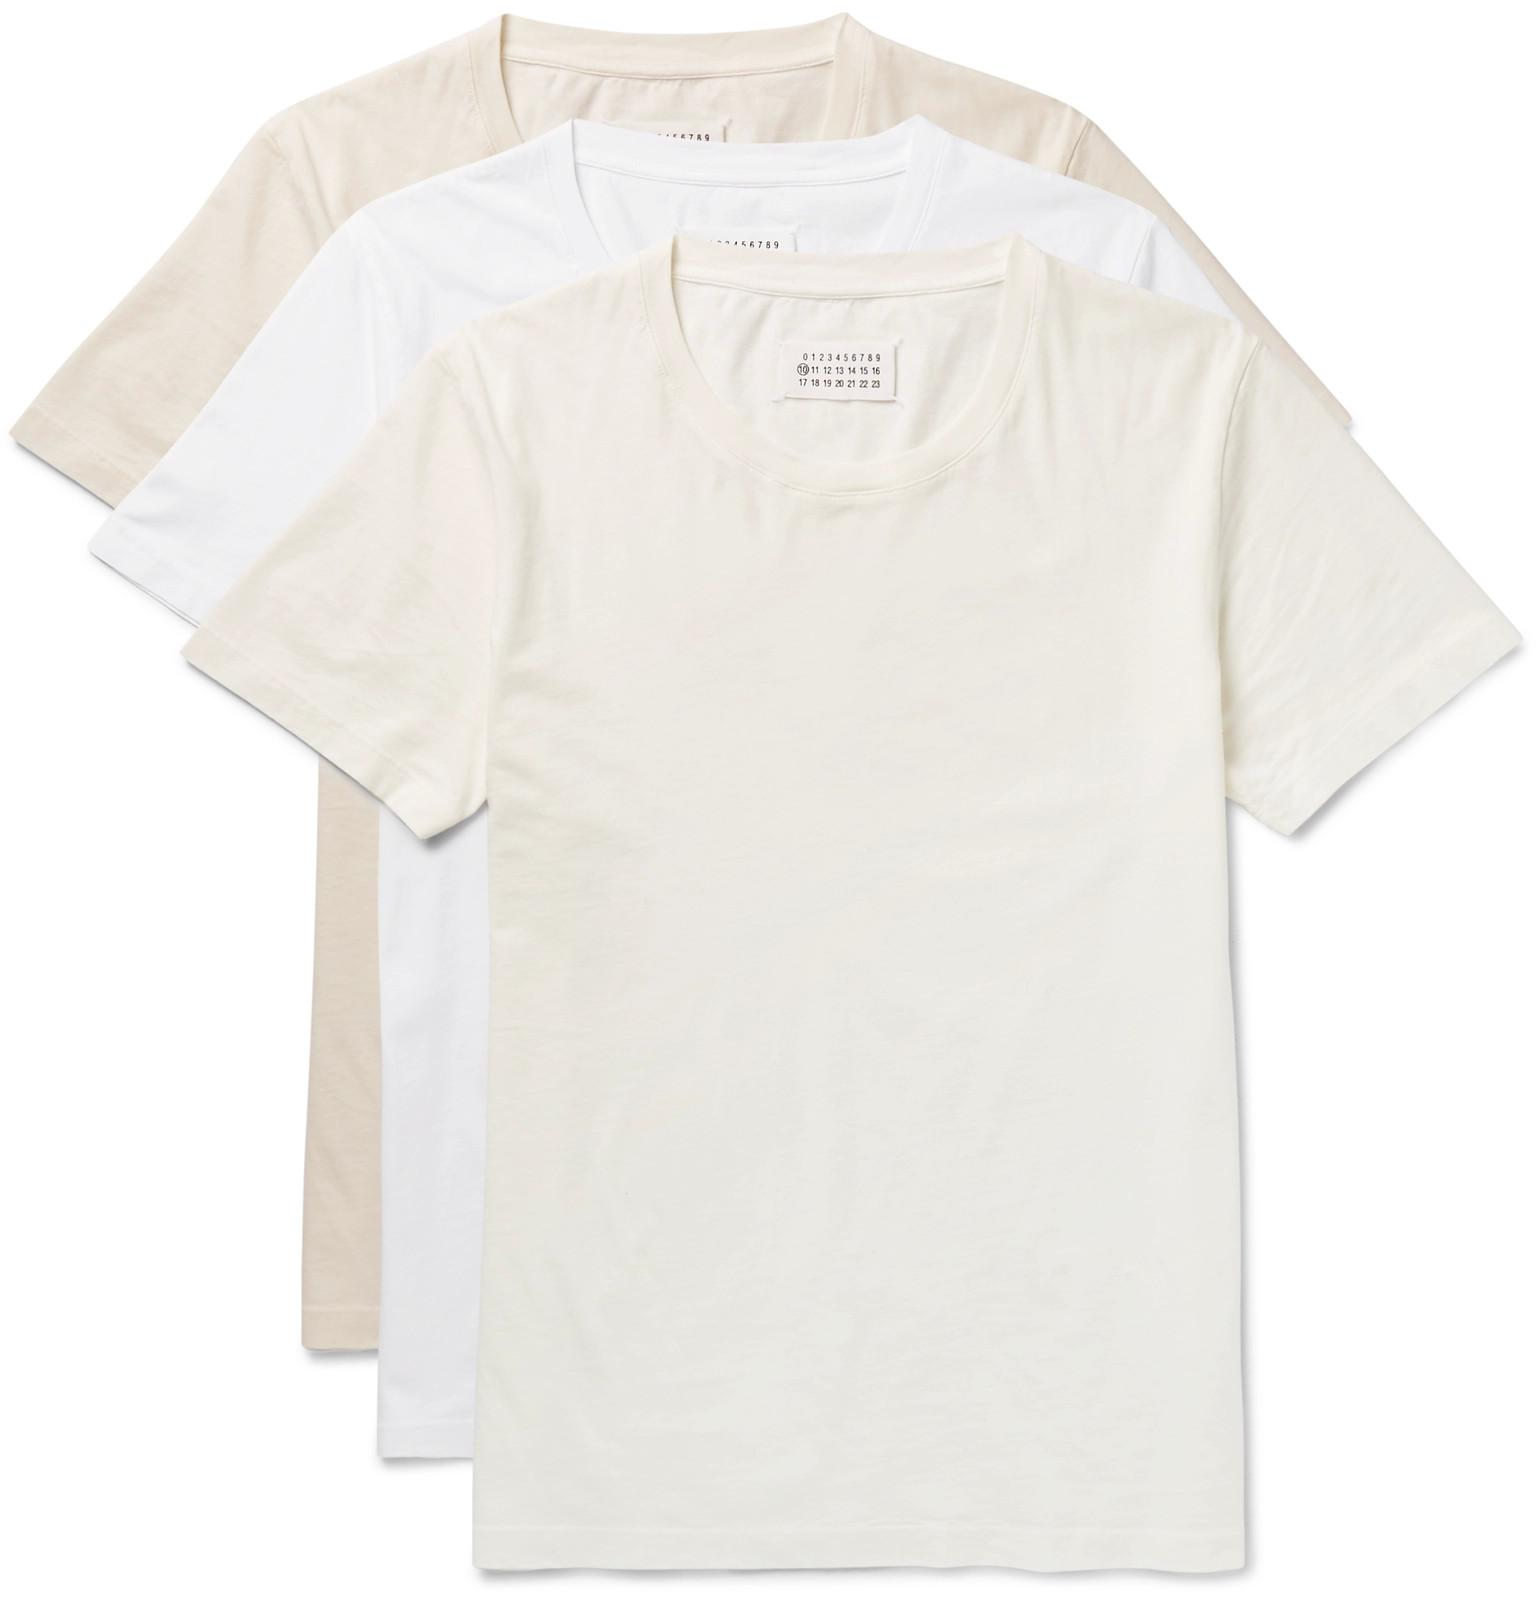 Free Shipping Cheap Price Three-pack Slim-fit Crinkled Cotton-jersey T-shirts Maison Martin Margiela Hyper Online uULIQ